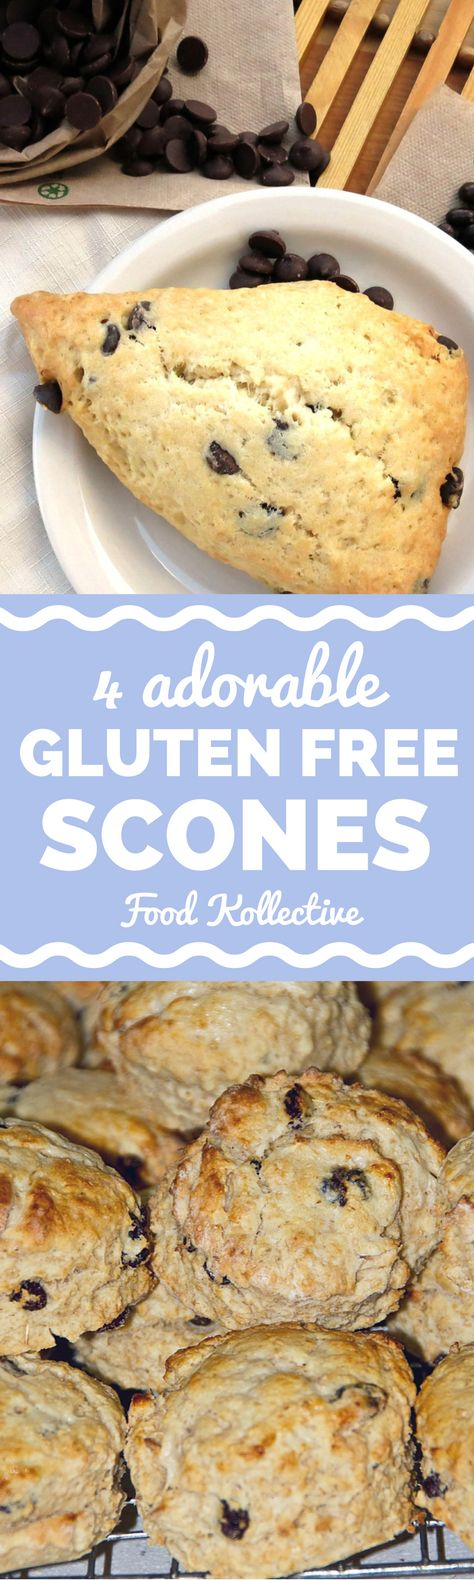 gluten free strawberry scones, gluten free maple scones, and vegan scones. These are great breakfast recipes and brunch recipes.